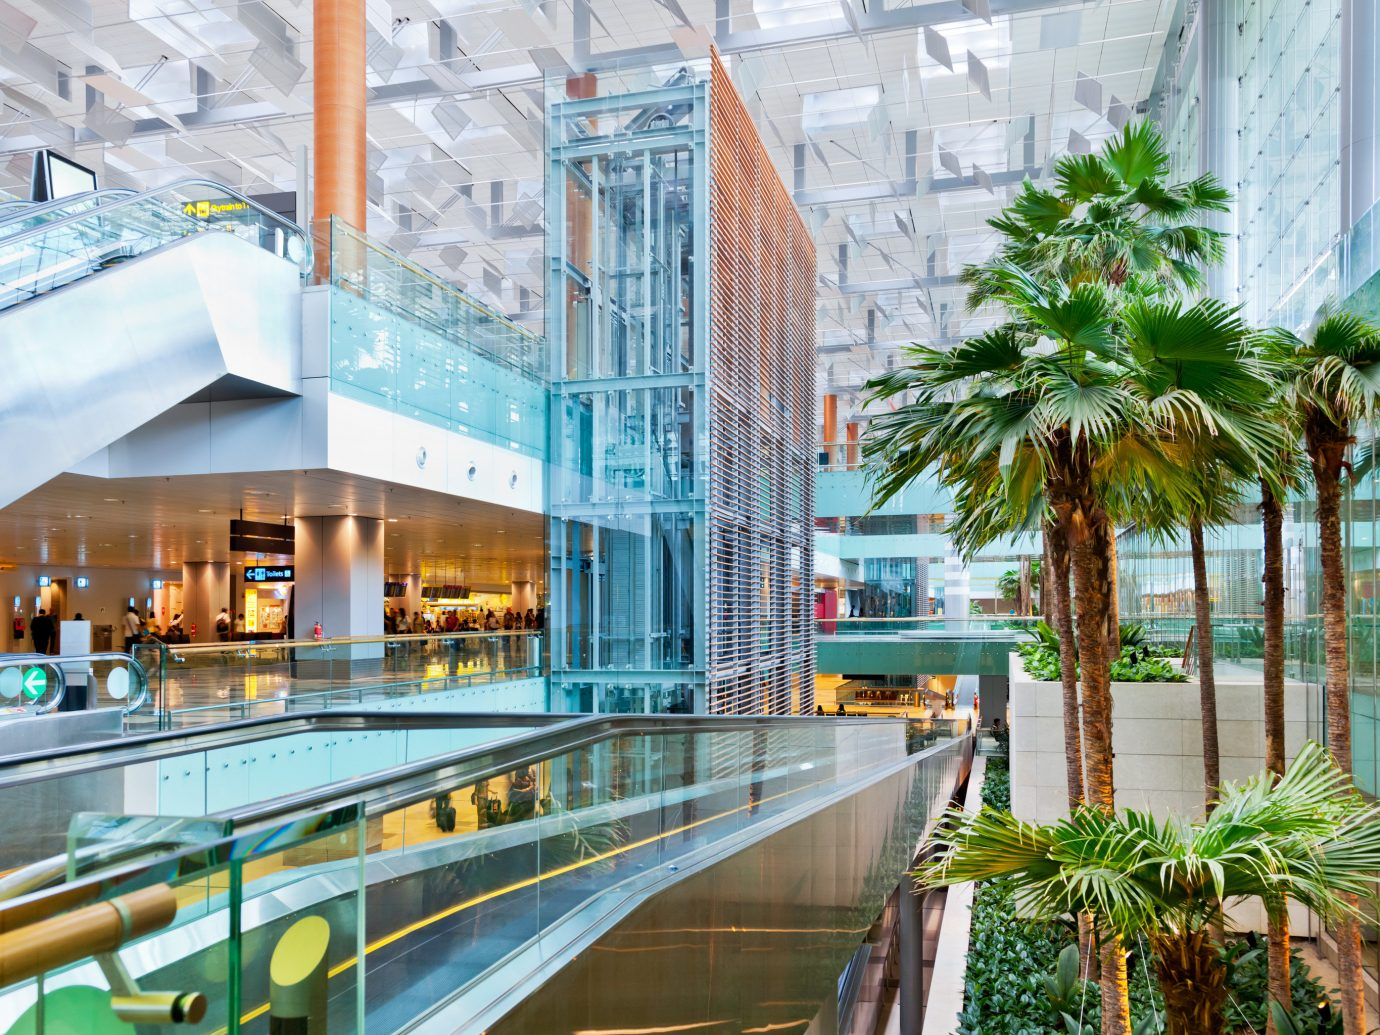 Travel Tips building outdoor plaza shopping mall condominium Resort retail Downtown plant